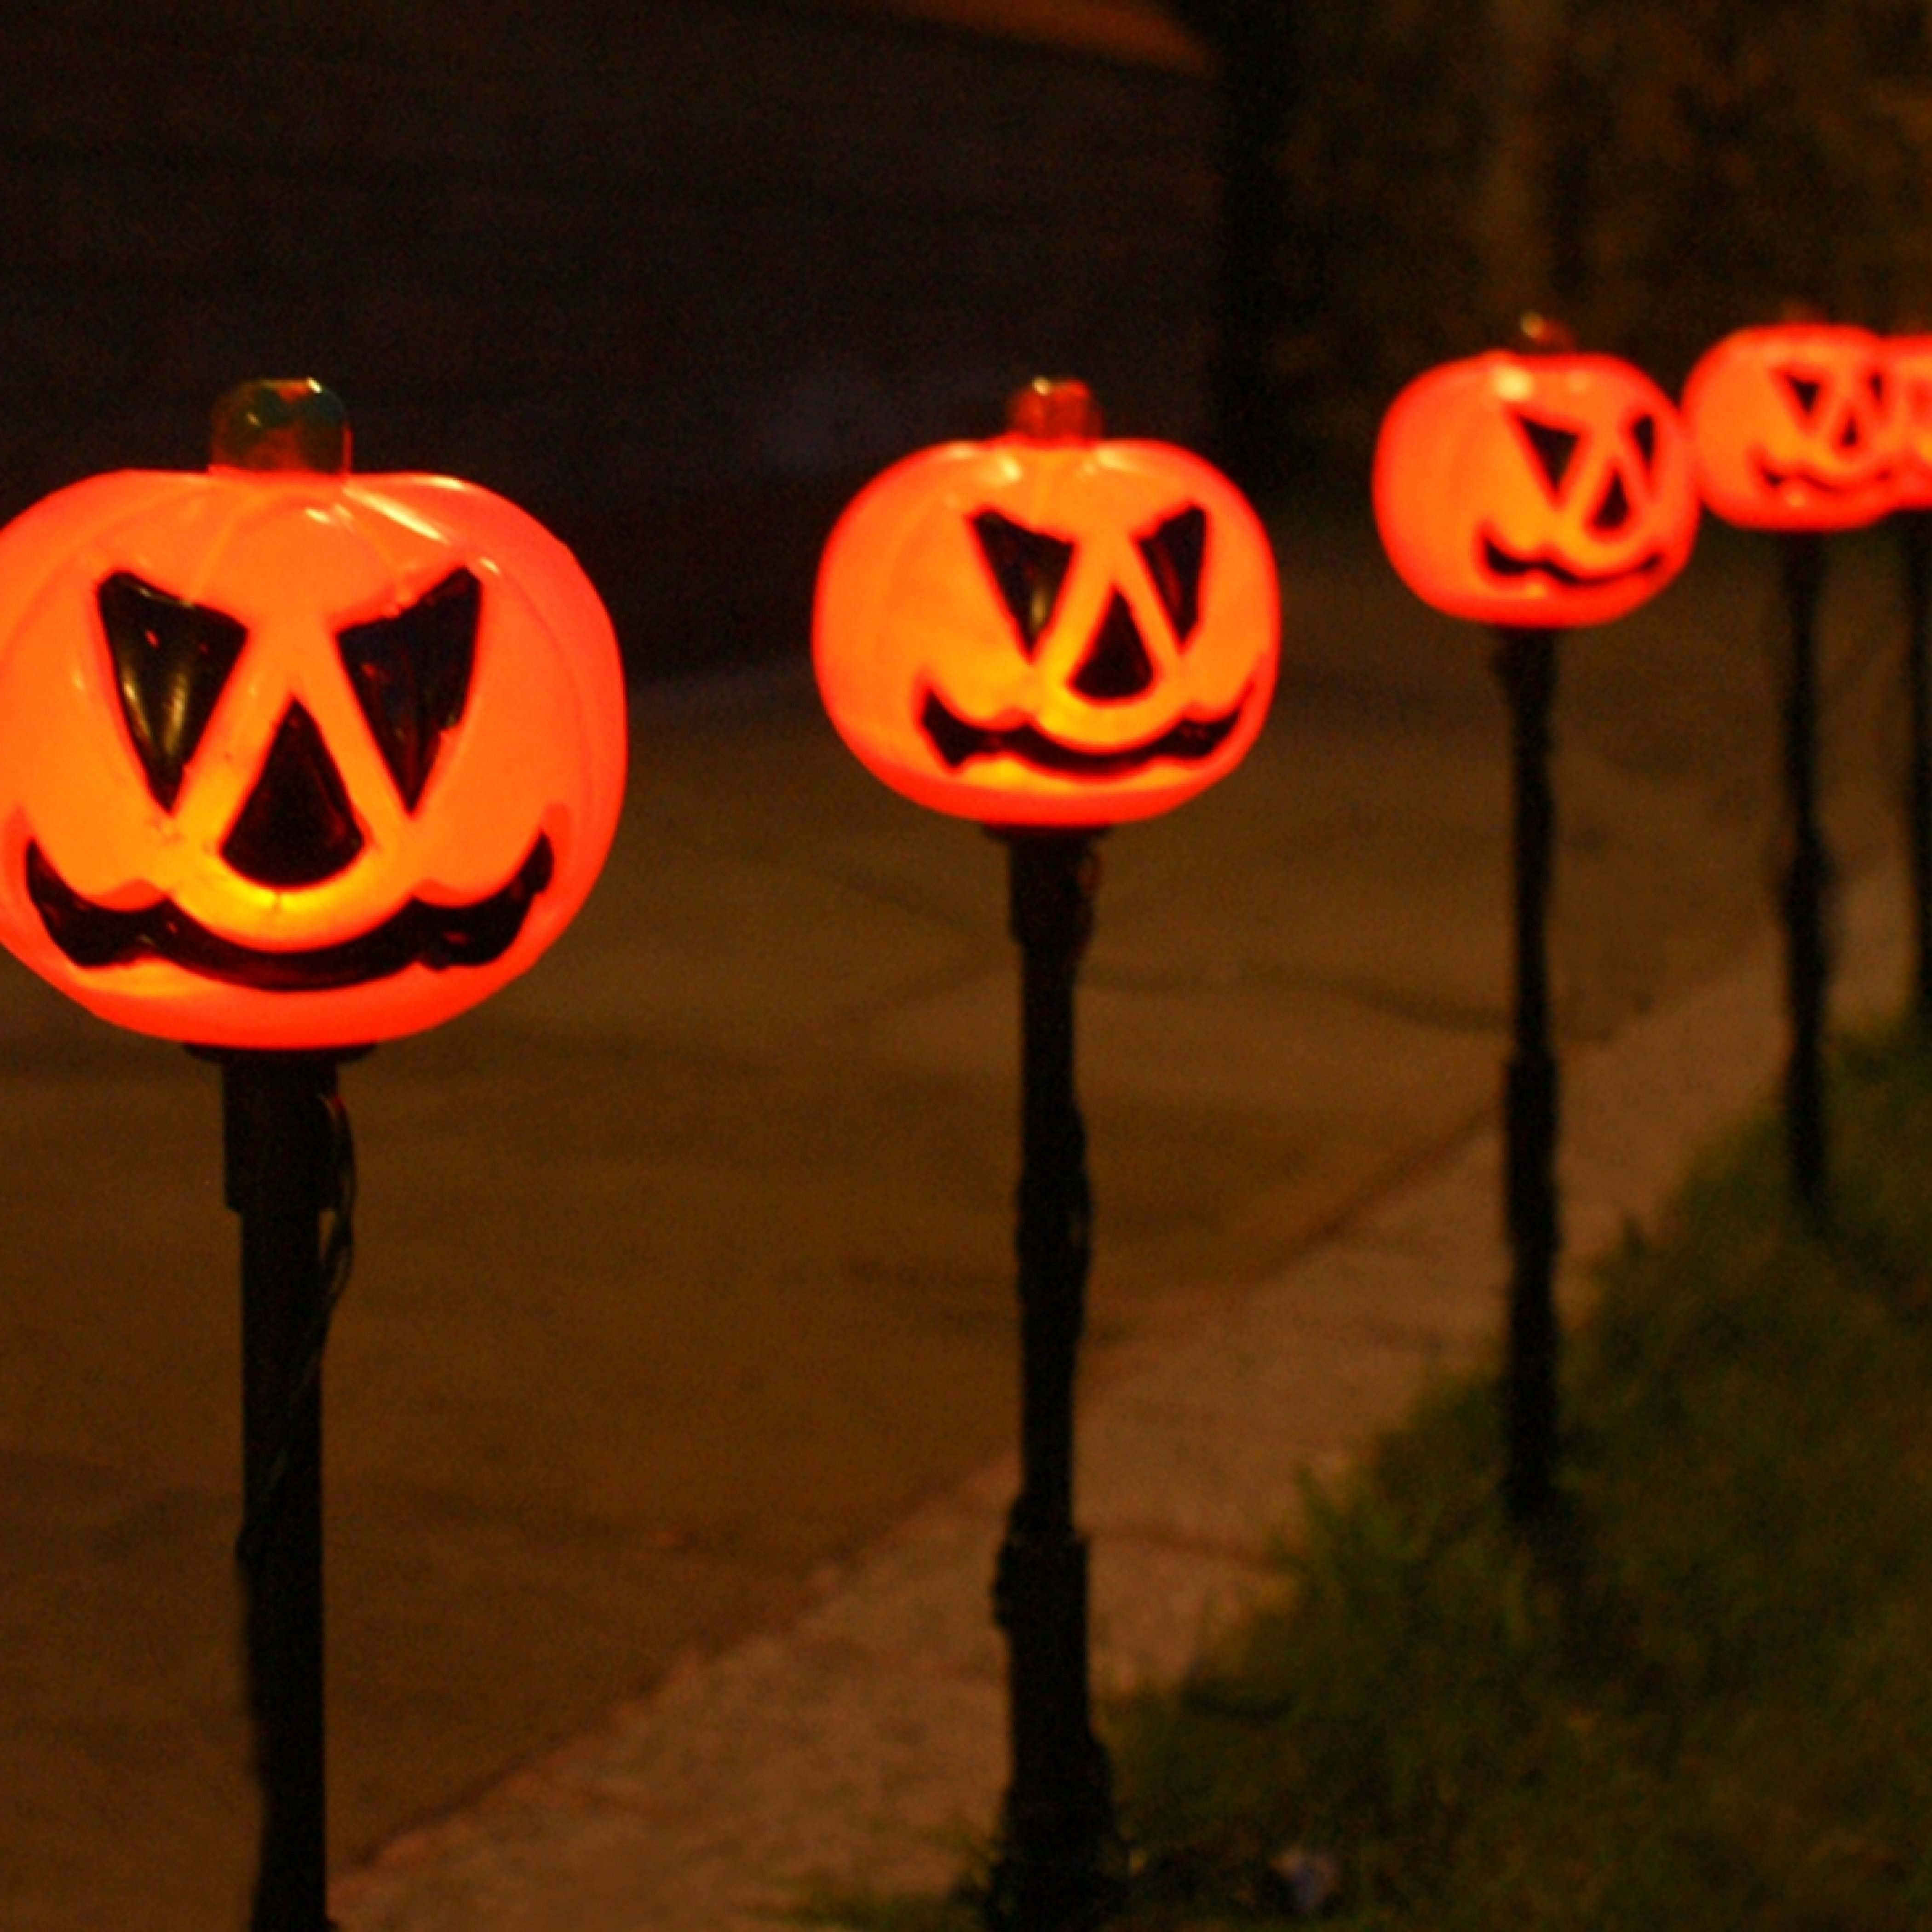 5 Outdoor Halloween Pumpkin Stake Lights, Orange Leds Pertaining To Newest Outdoor Pumpkin Lanterns (View 3 of 20)